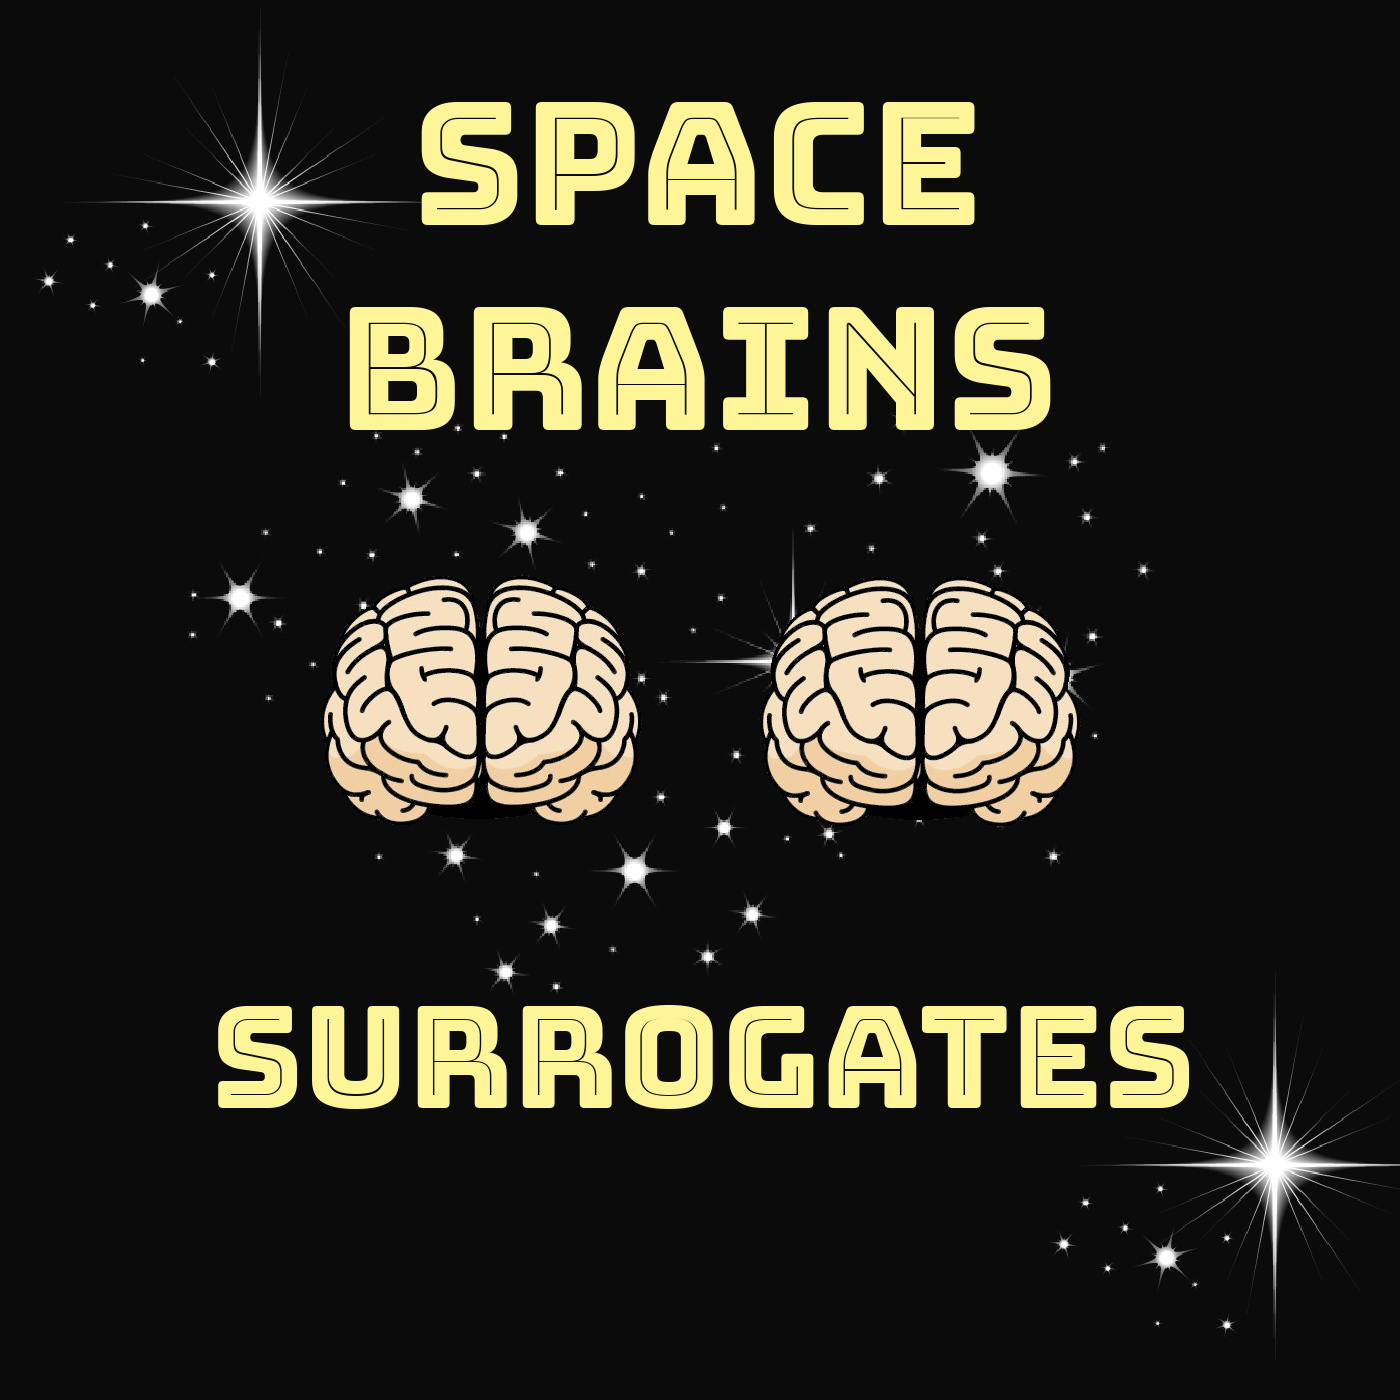 Space Brains - 43 - Surrogates